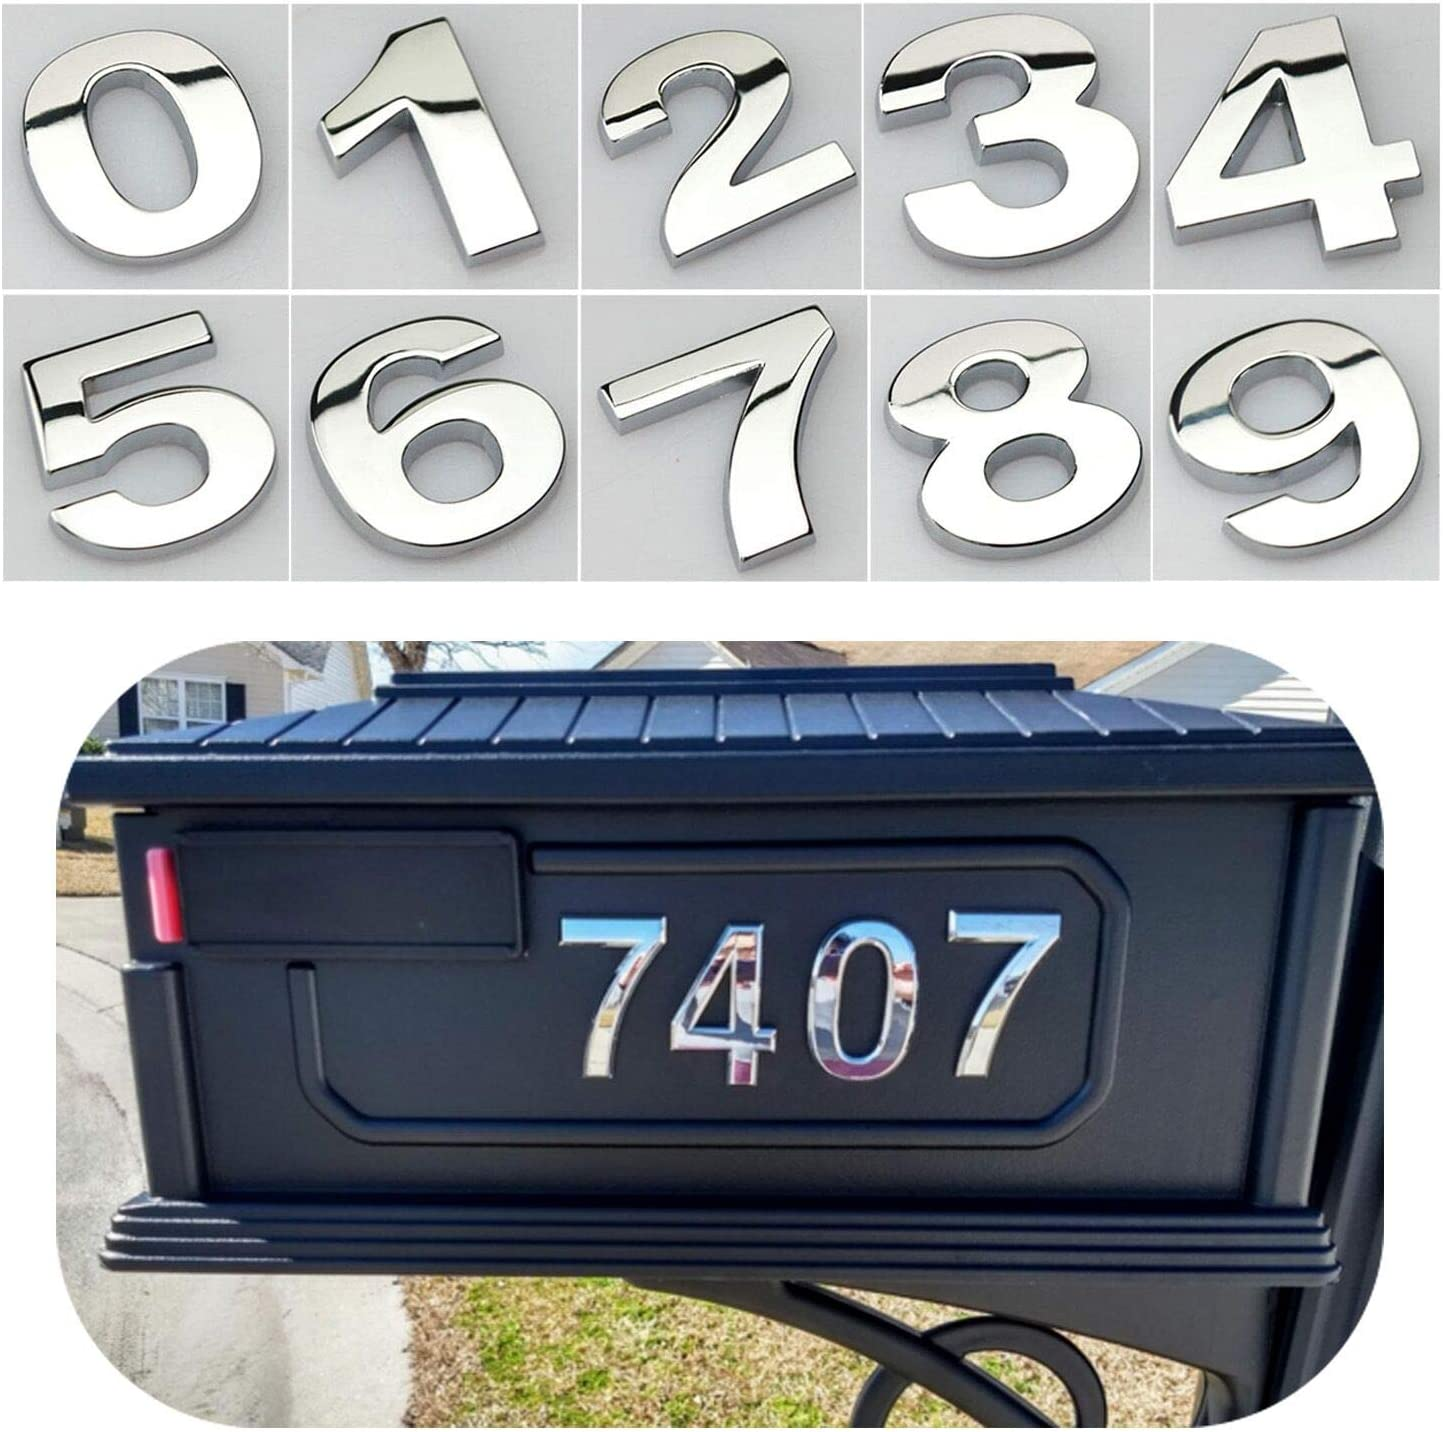 Double Silver Letter R Street Door Numbers Mailbox Numbers Self-Stick Address Signs for Apartments 2.75 Inch Adhesive House Numbers